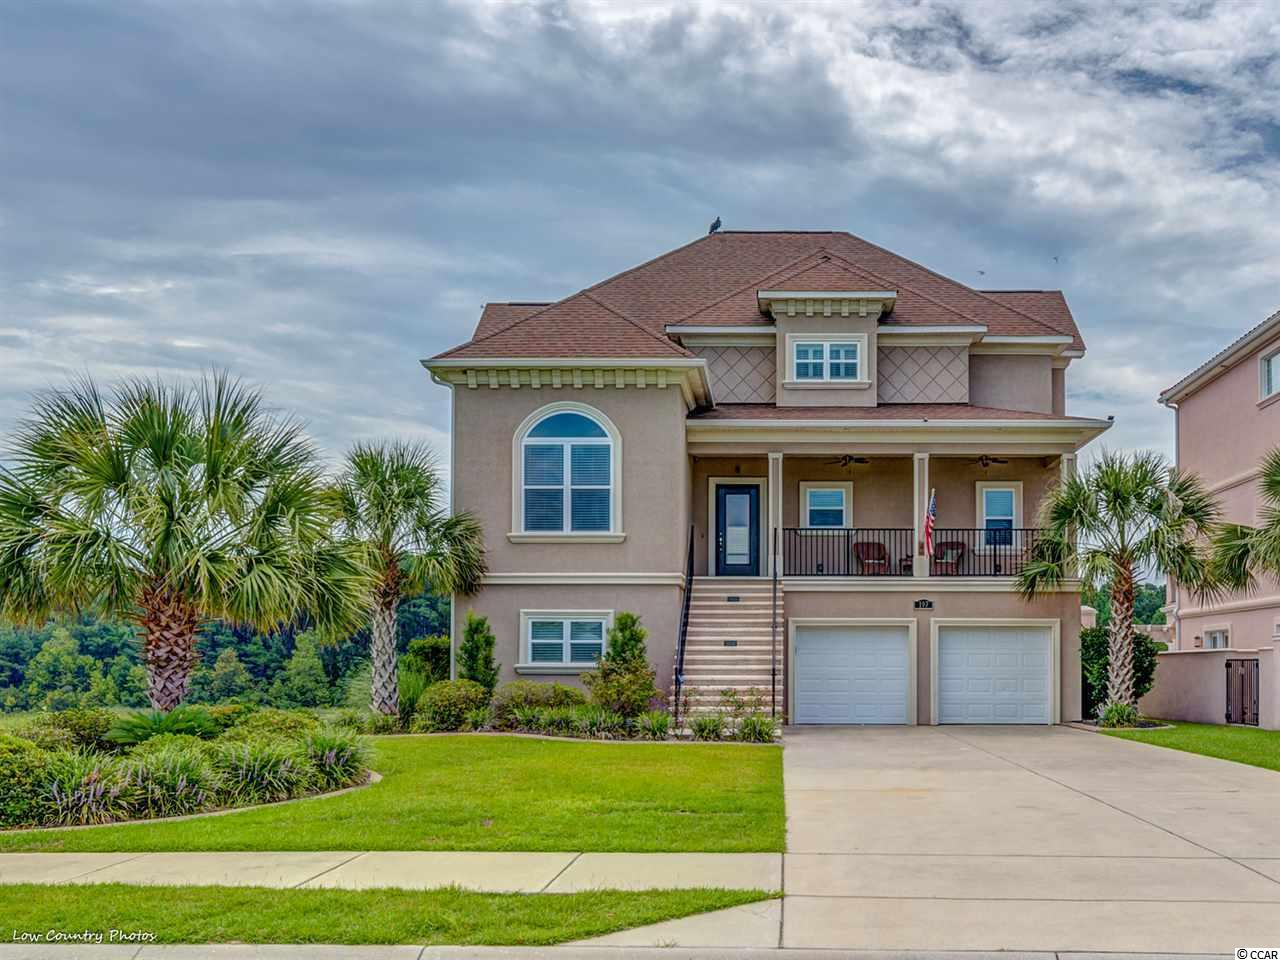 """Intracoastal Living at its finest. This mint condition home is located at The Bluffs on the Waterway in Myrtle Beach, SC. 197 Avenue of the Palms offers you the lifestyle you deserve. Boasting over 3700 heated square feet and almost 6000 square feet under roof, this is """"the one"""" for you. The residence's central living area has impressive sightlines that provide ample natural light but afford endless vistas of the waterway and passing watercraft. A spacious kitchen with plentiful cabinet space flanked by a large breakfast nook and sitting area has an equally impressive view. Rounding out the central living area is a guest bedroom and a flex room that could be an office, game room, or a formal dining room. You have an oversized master retreat with a sitting area and access to a private balcony on the top level. The en-suite bath and walk-in closet were well thought out and designed for maximum functionality. Additionally, there is a guest bedroom on the opposite side of the home on this level, affording the owner and guests their evening privacy. The home's lower level has the fourth bedroom, currently used as an office, and a downstairs living area that could have multiple different uses. The massive 1000 square foot 2-car garage has more than enough room for cars, golf carts, toys, and storage. With covered decks, patios, and balconies, this Intracoastal Waterway home has outside living areas that will provide countless hours of relaxation. The Bluffs on the Waterway is an established gated community on the west side of the ICW. Offering two clubhouses, pools, a play area, dry dock storage, and a private boat launch, this community has everything to make your dream a reality. The Bluffs is only a short four and a half-mile drive to the vast, friendly sandy white beaches that have made Myrtle Beach world-famous. Shopping, Restaurants, Award Winning Schools, World-Class Golf, Vegas-like Entertainment, and many other features that will complement your new lifestyle are"""